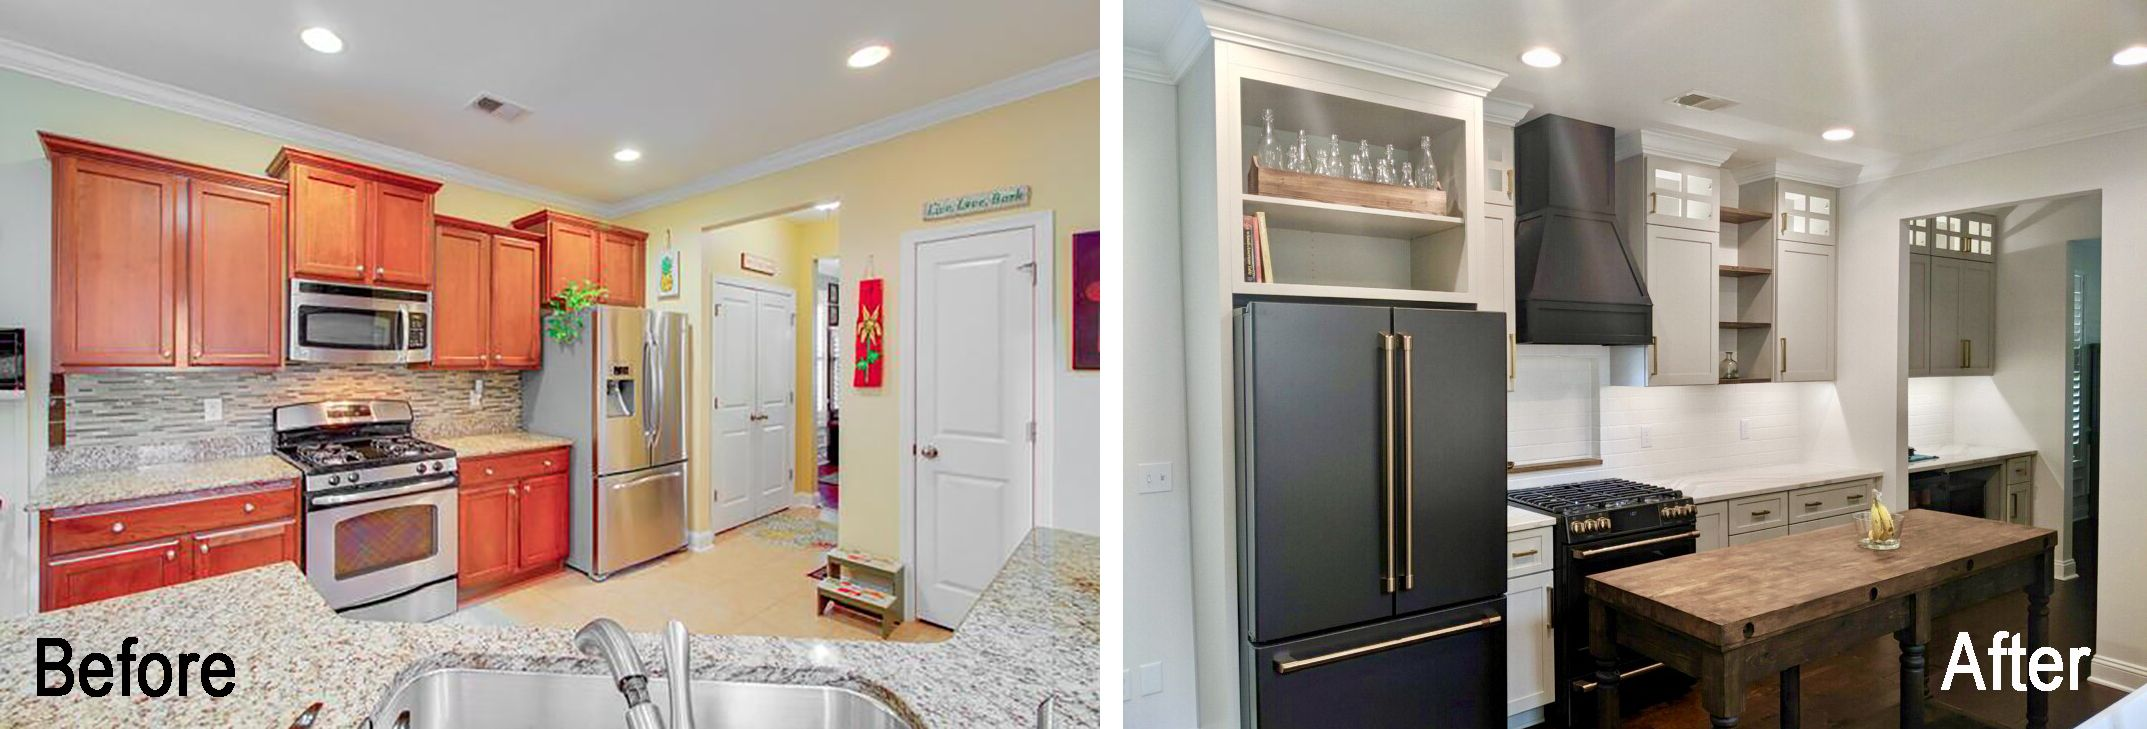 Transitional Kitchen Remodel With Creative Custom Work Kitchen Remodeling Projects Refacing Kitchen Cabinets Home Kitchens